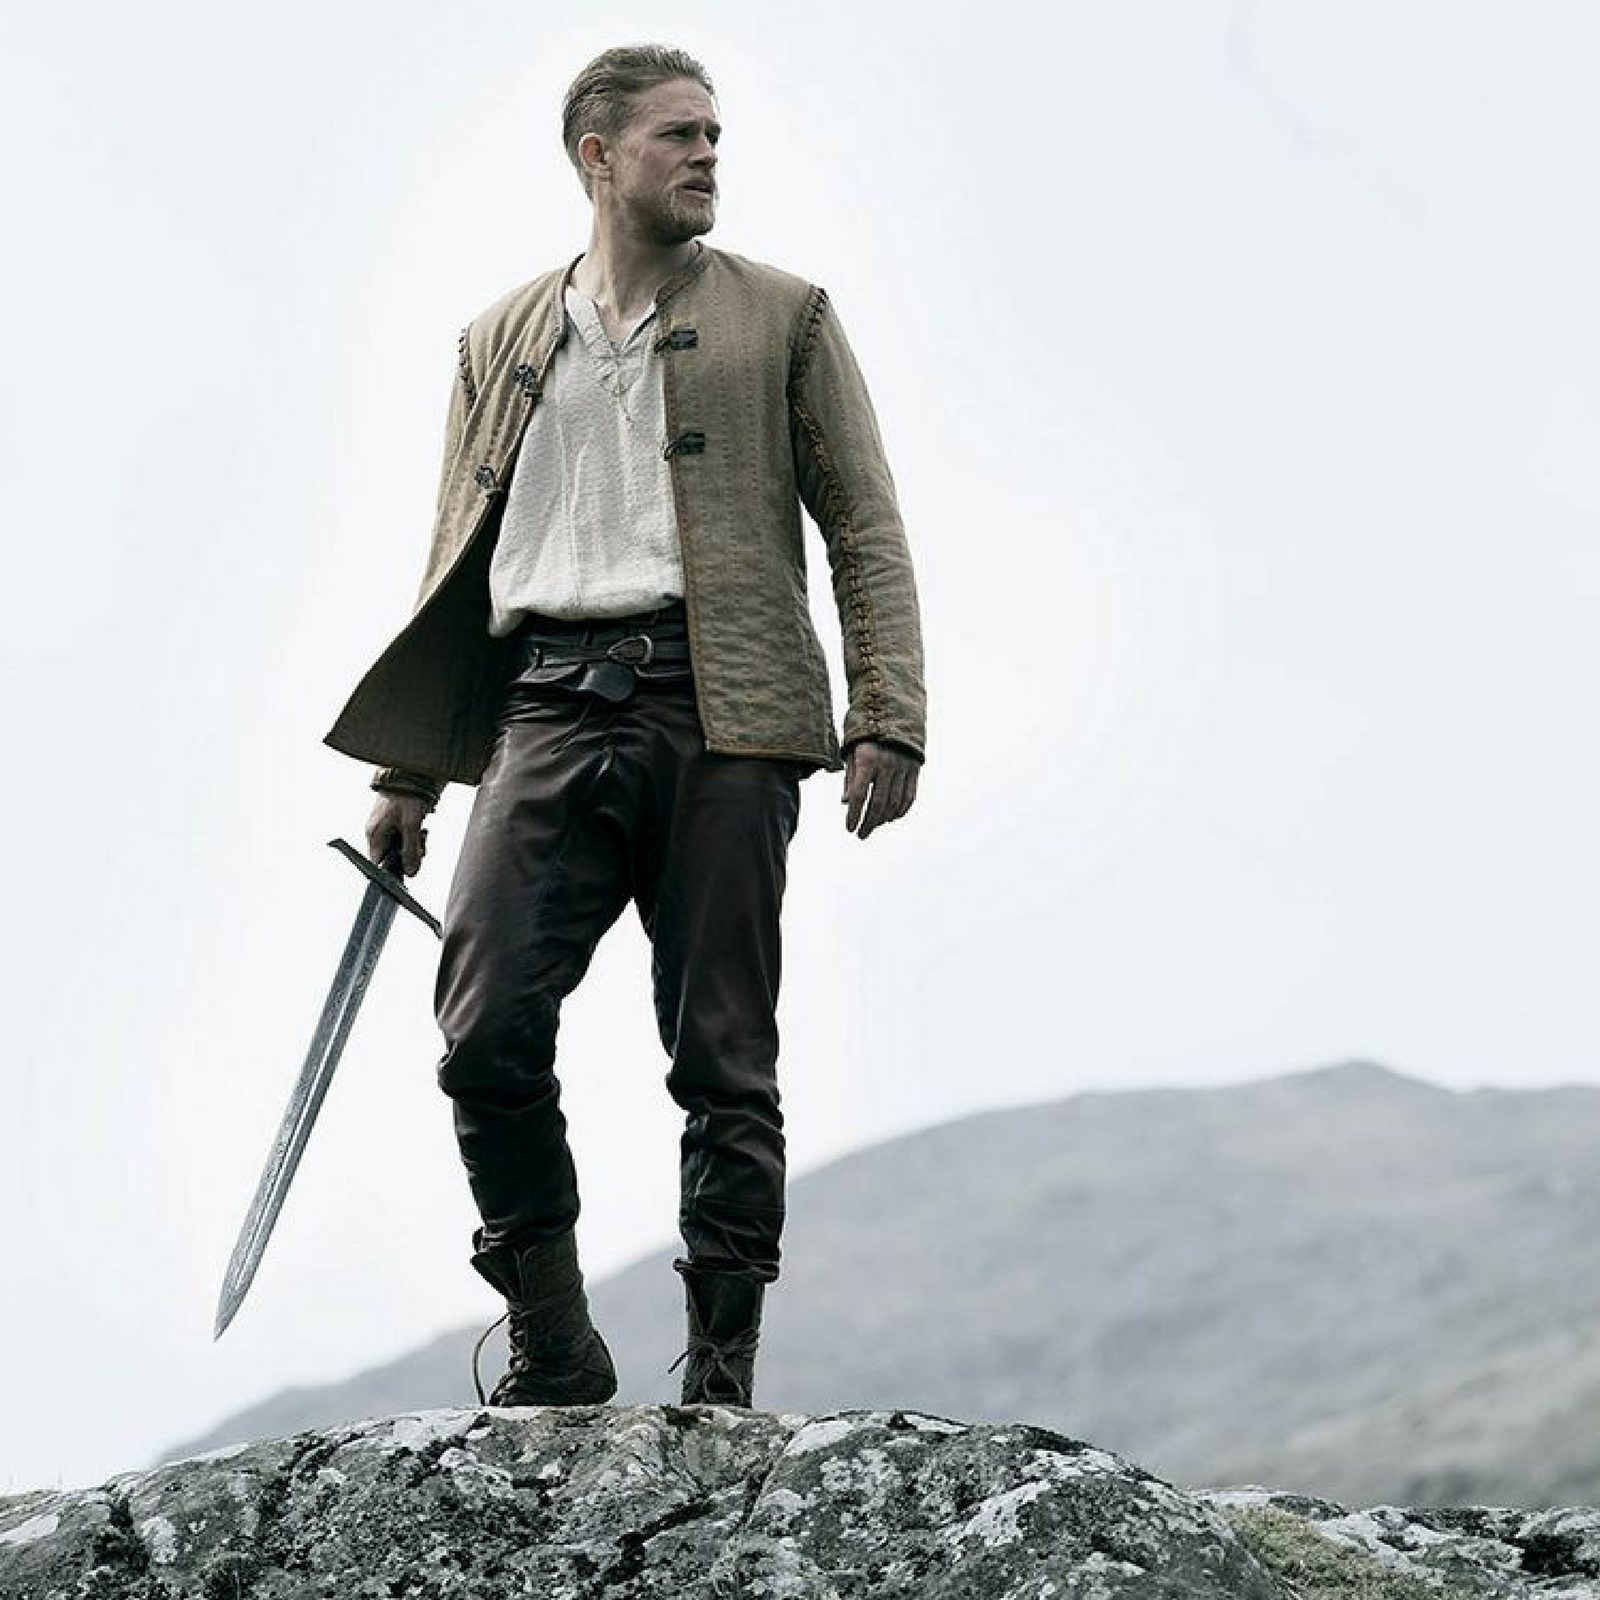 Review: 'King Arthur: Legend of the Sword' Has The Makings Of A Decent Director's Cut